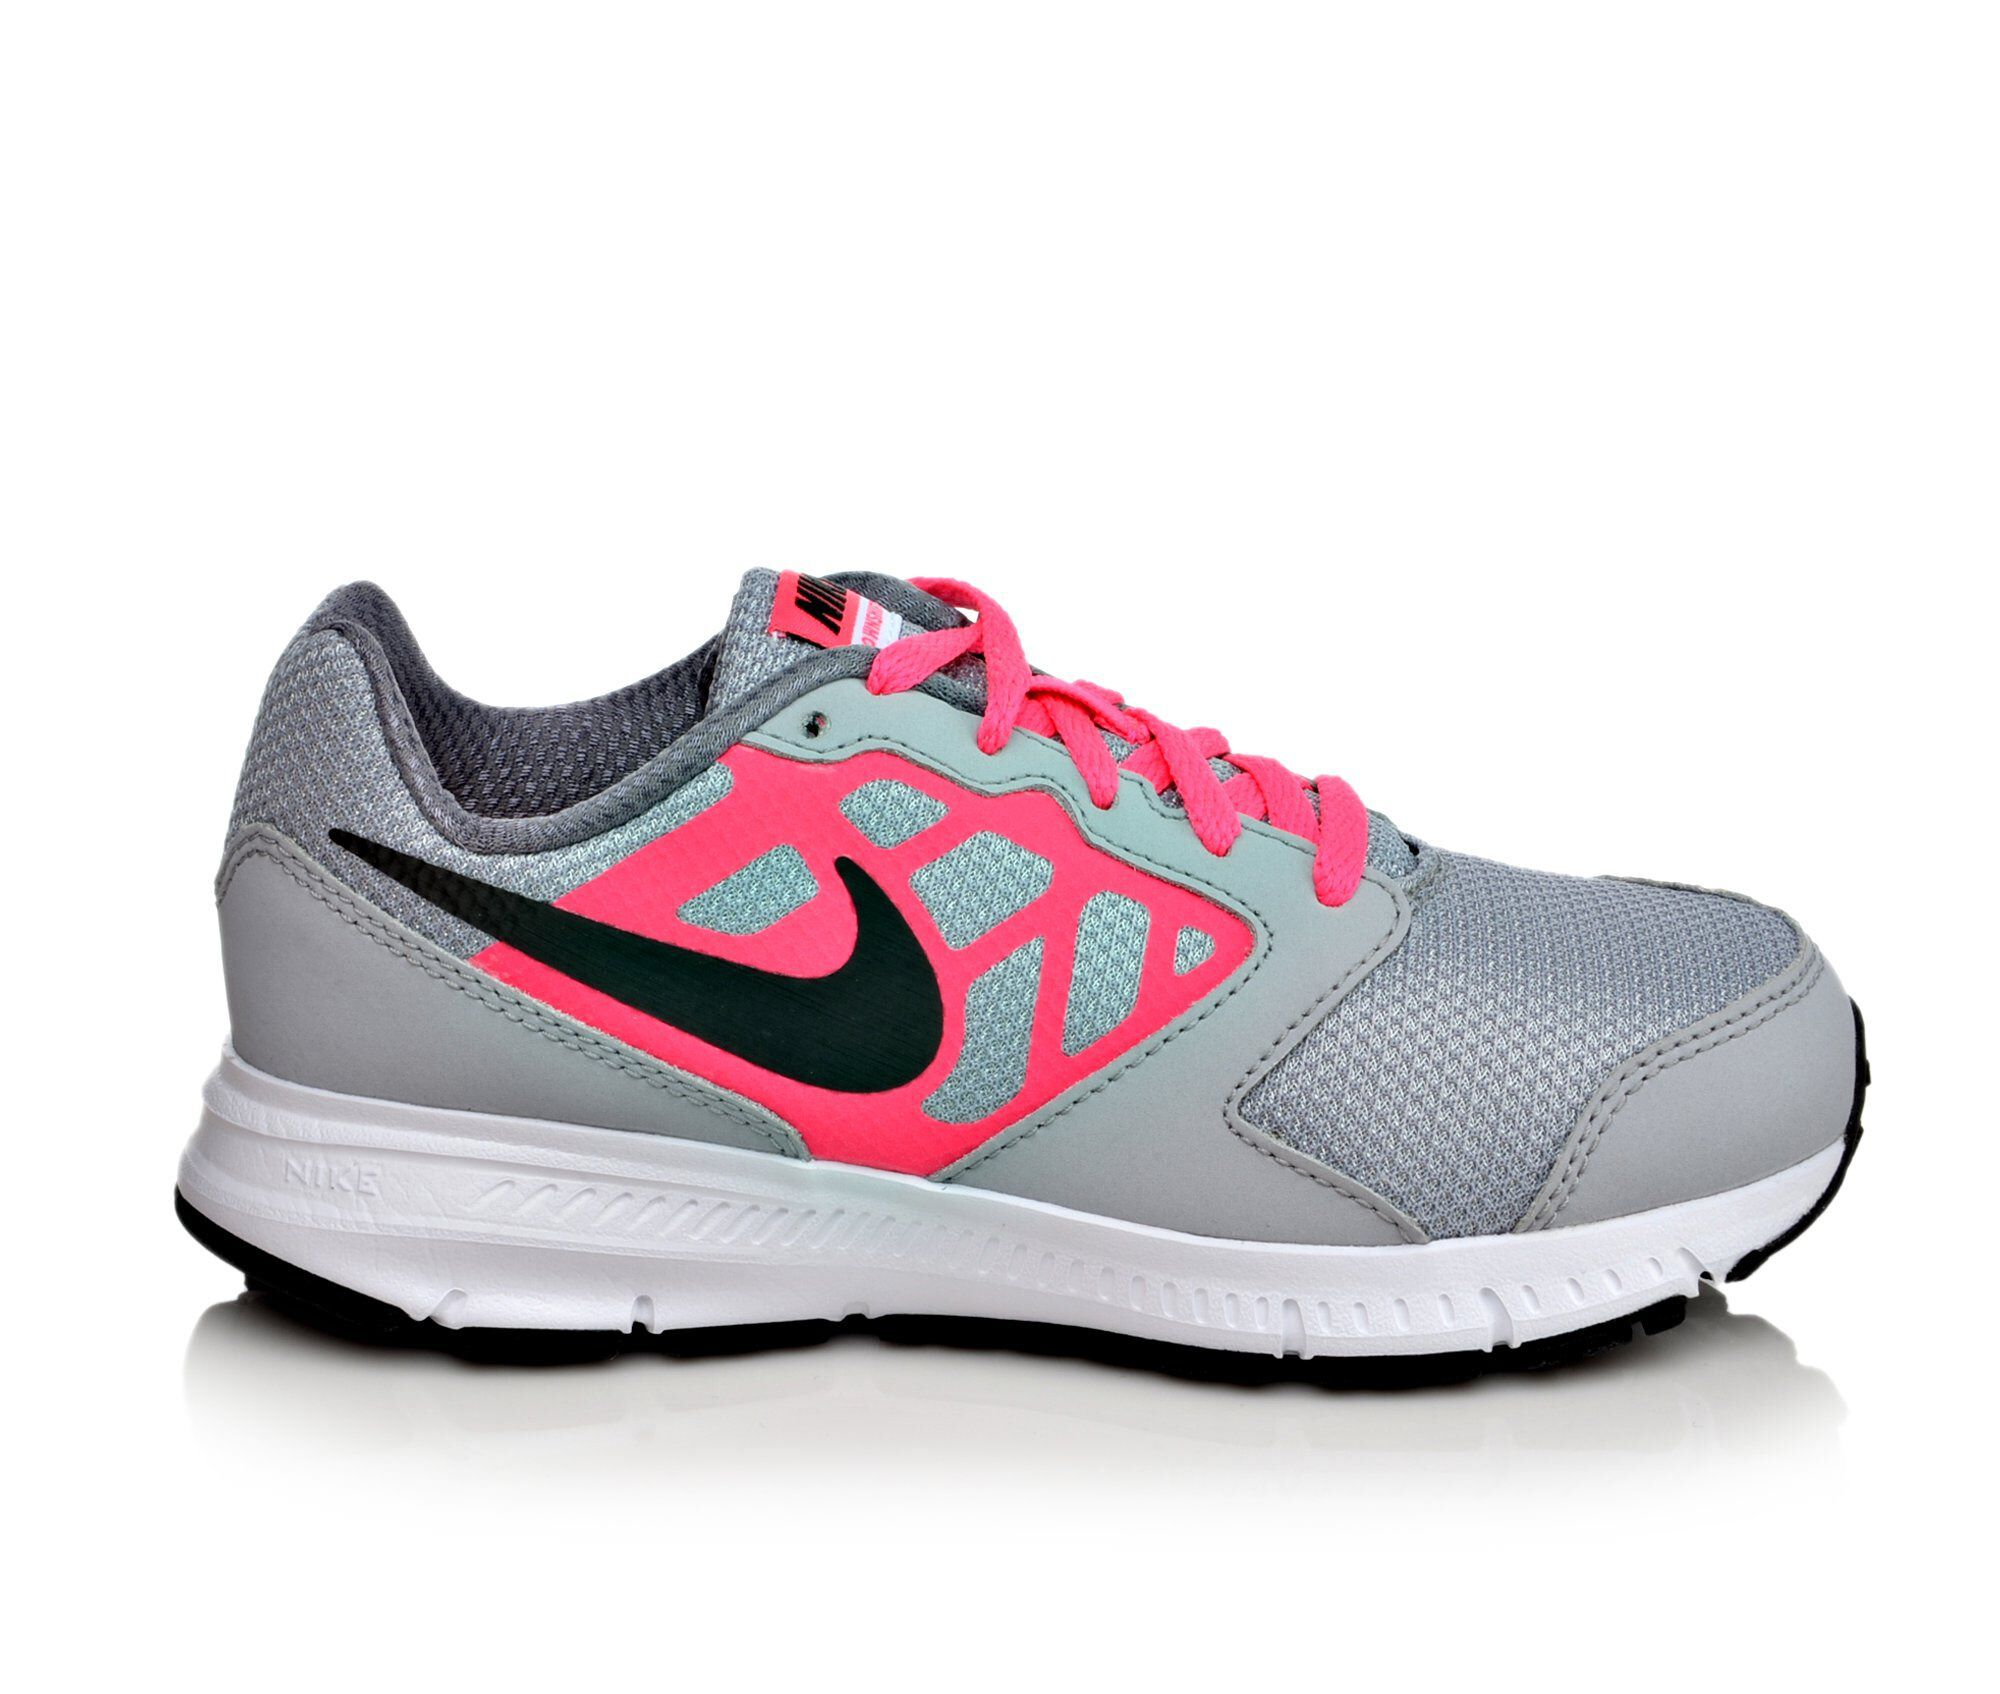 Images. Girls' Nike Downshifter 6 10.5-7 Running Shoes